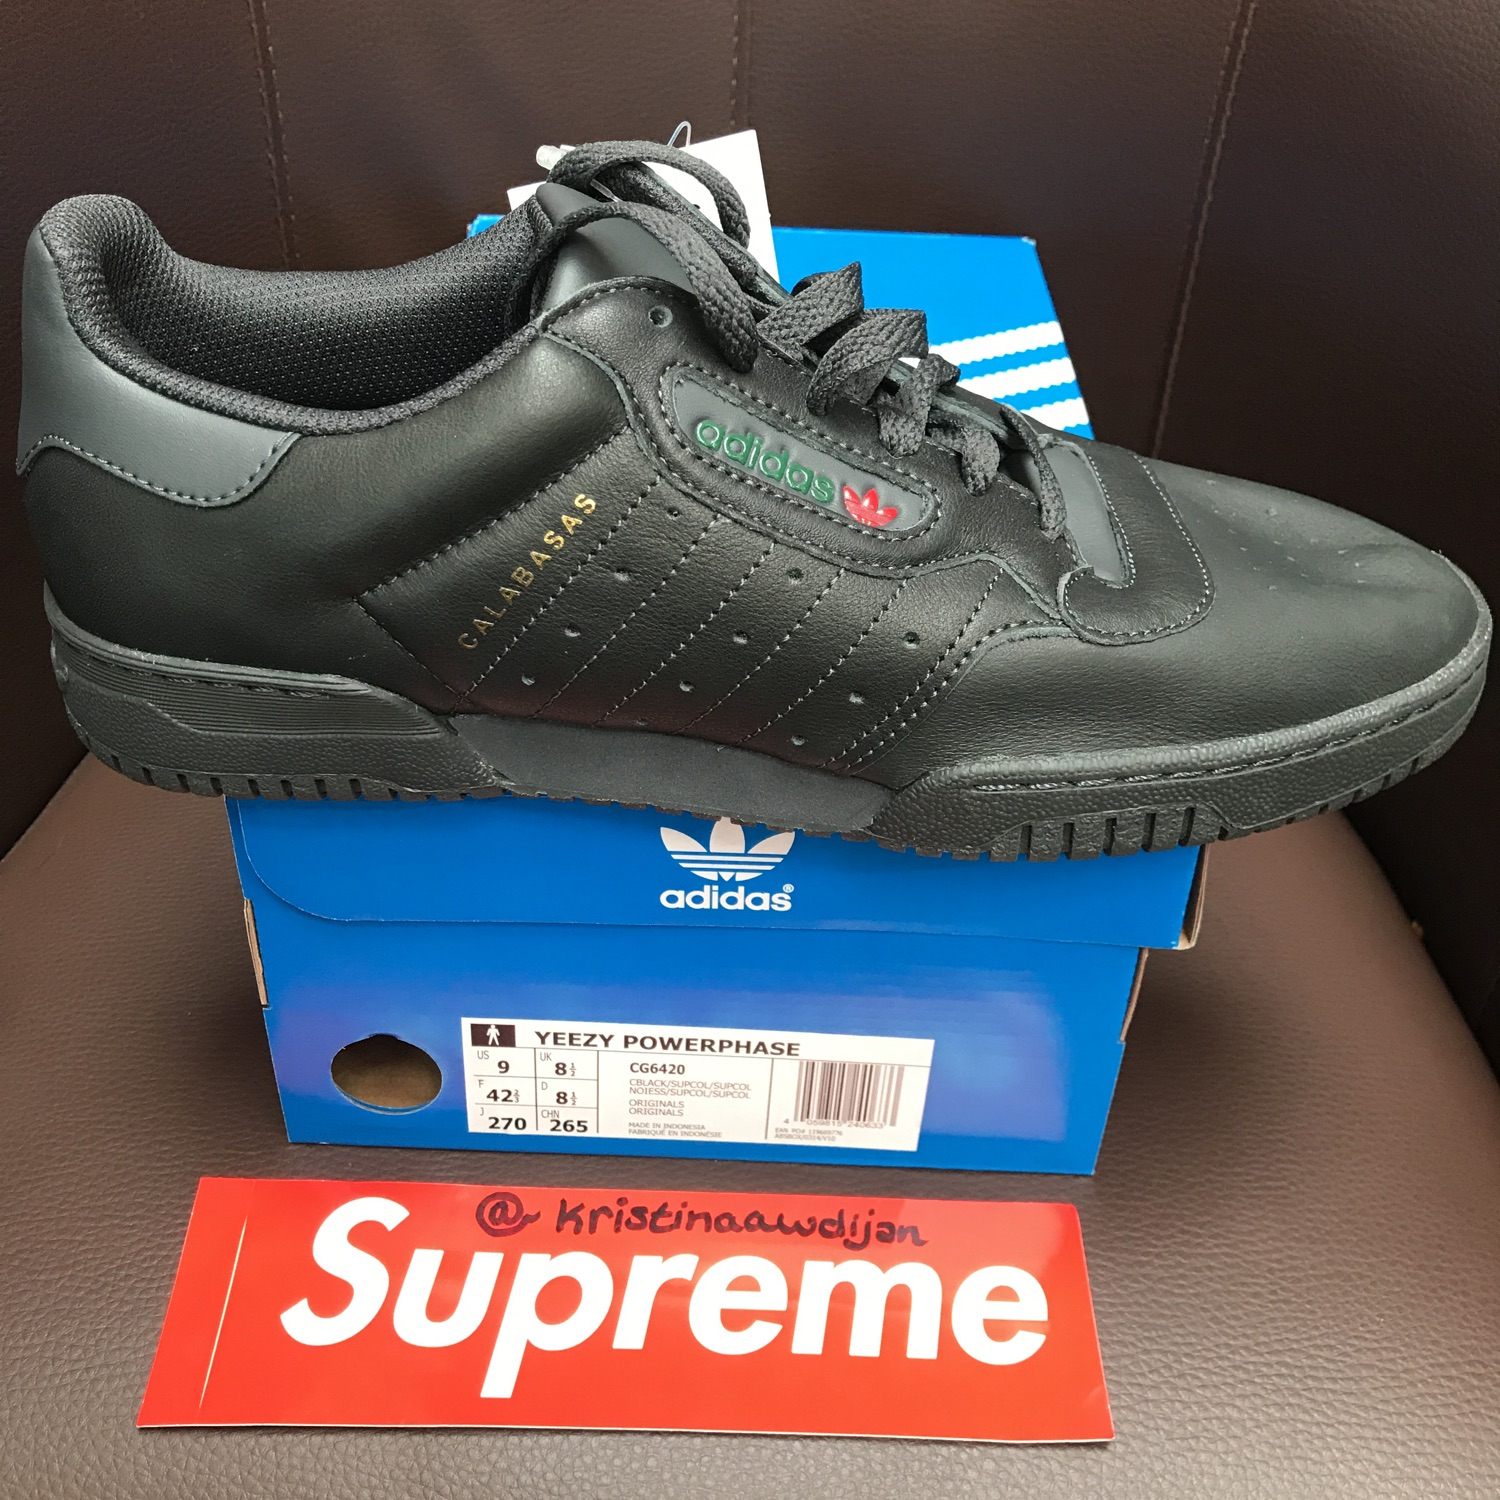 Adidas Yeezy Powerphase Eu 42 23 Uk 8.5 Us 9